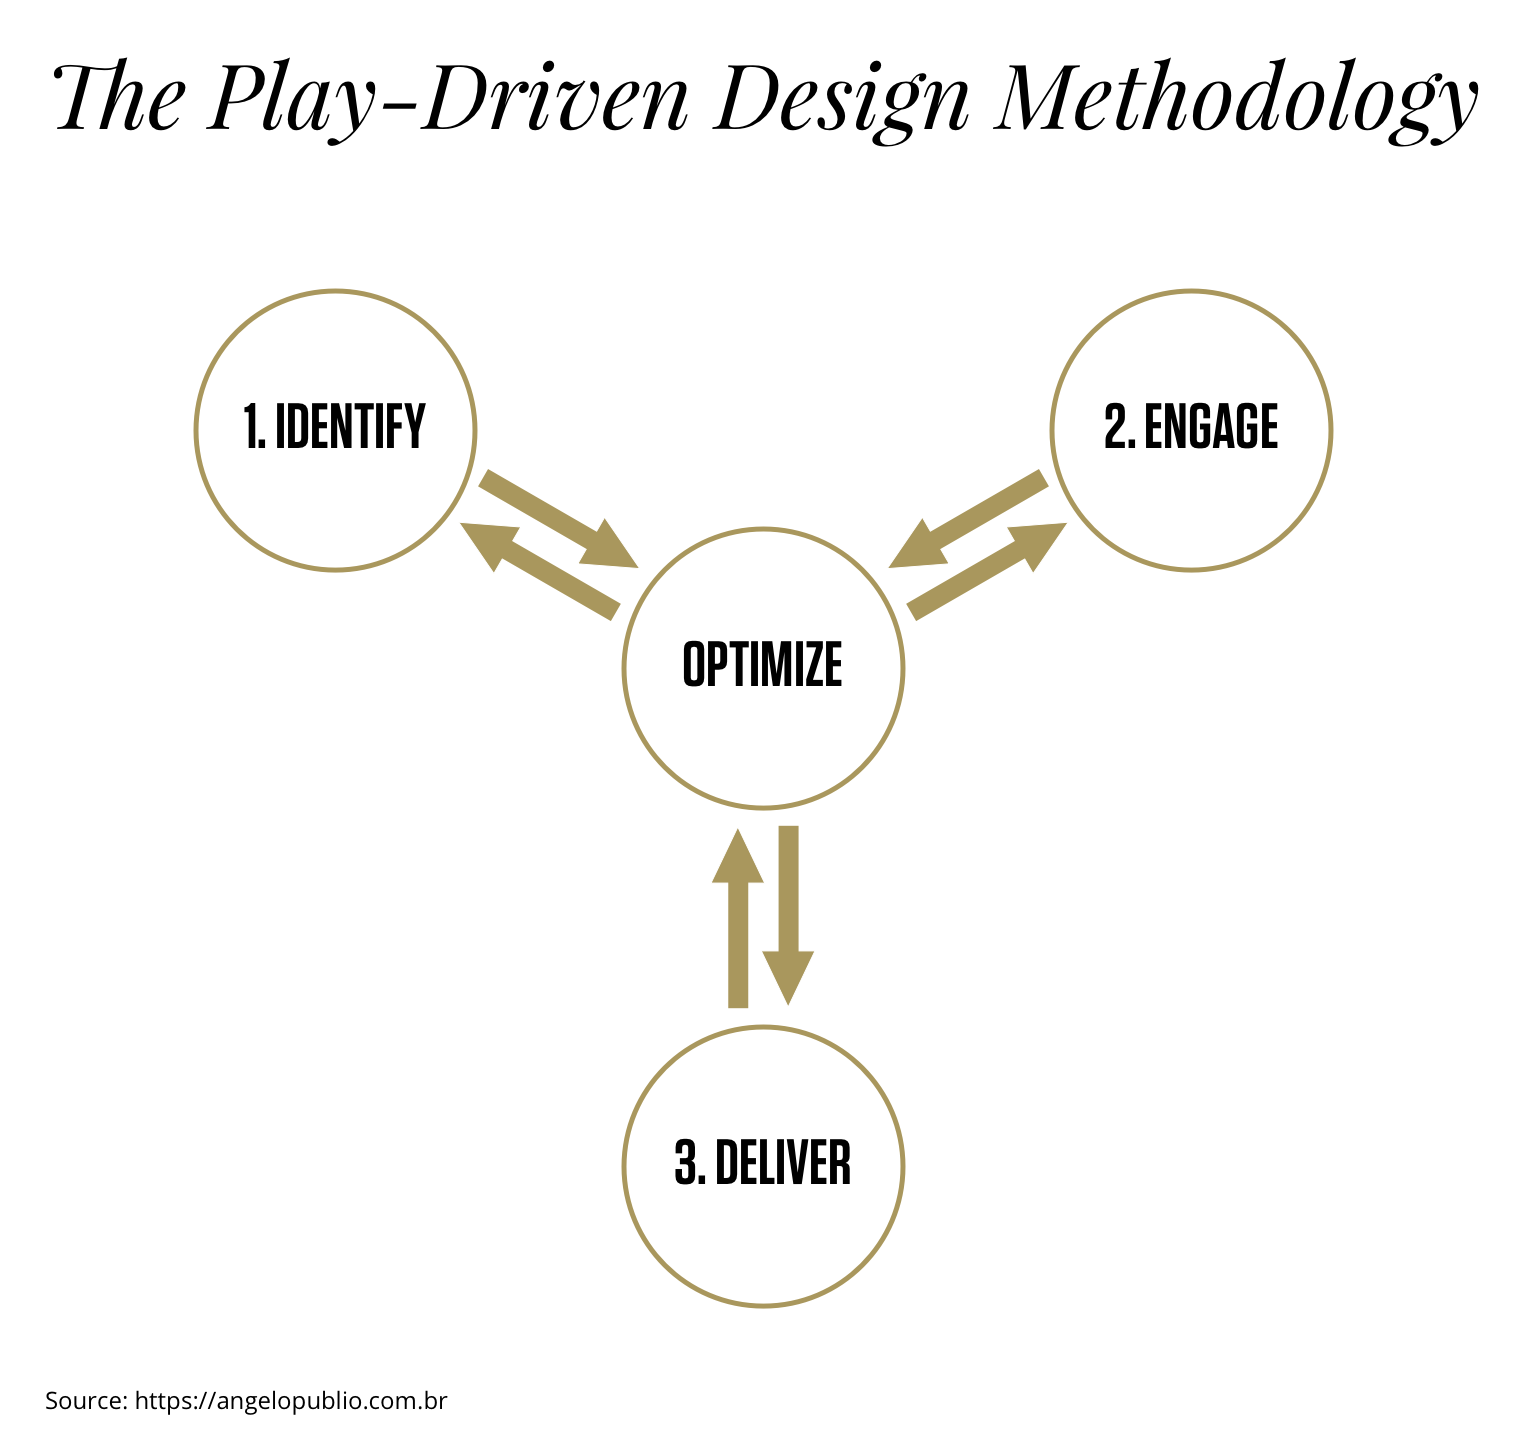 The Play-Driven Design Methodology